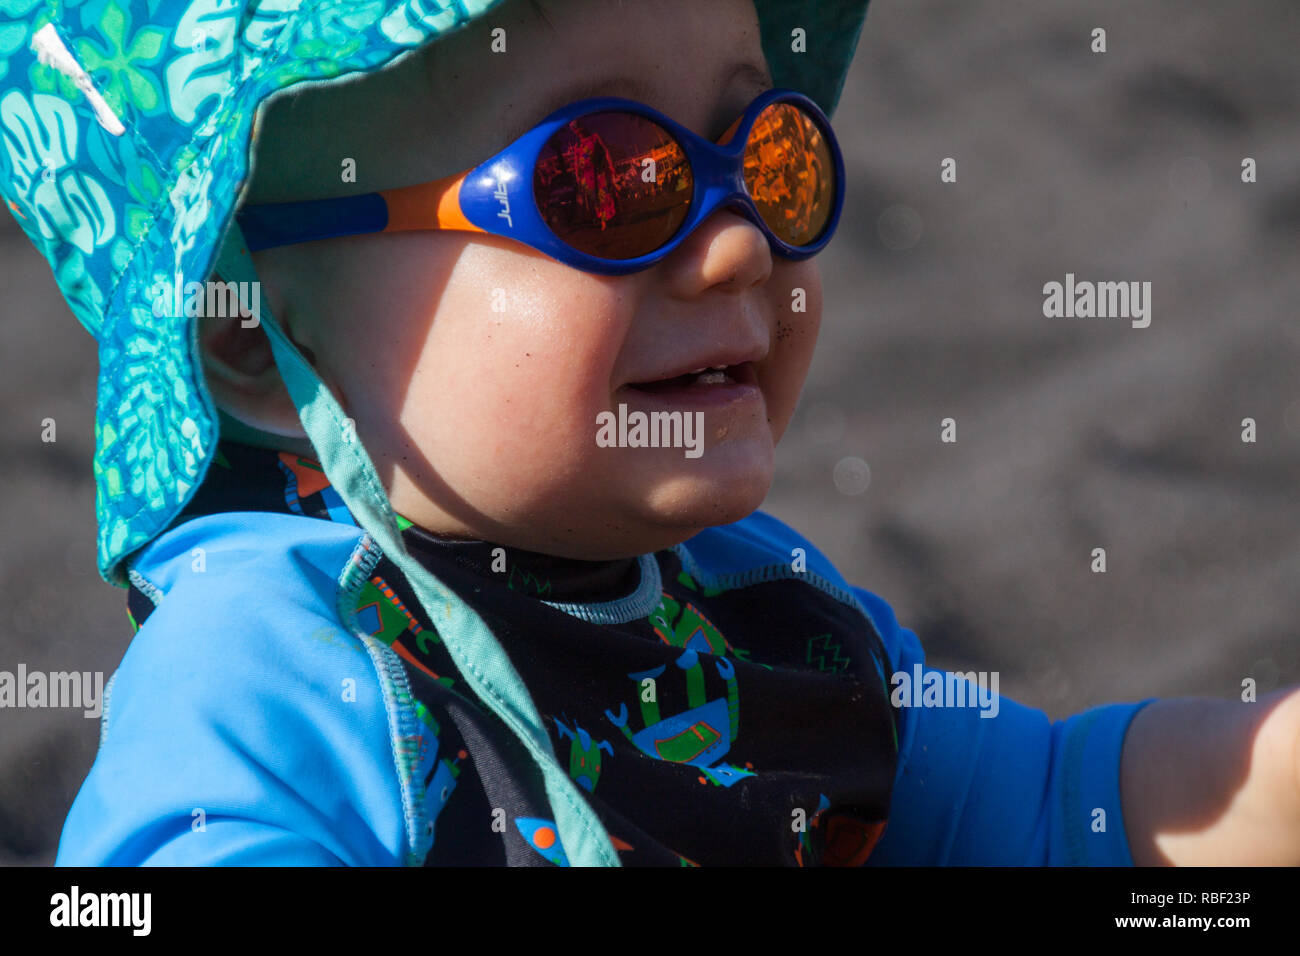 0f4efb82eb47 A nice portrait of a young boy wearing sunglasses and laughing - Stock Image